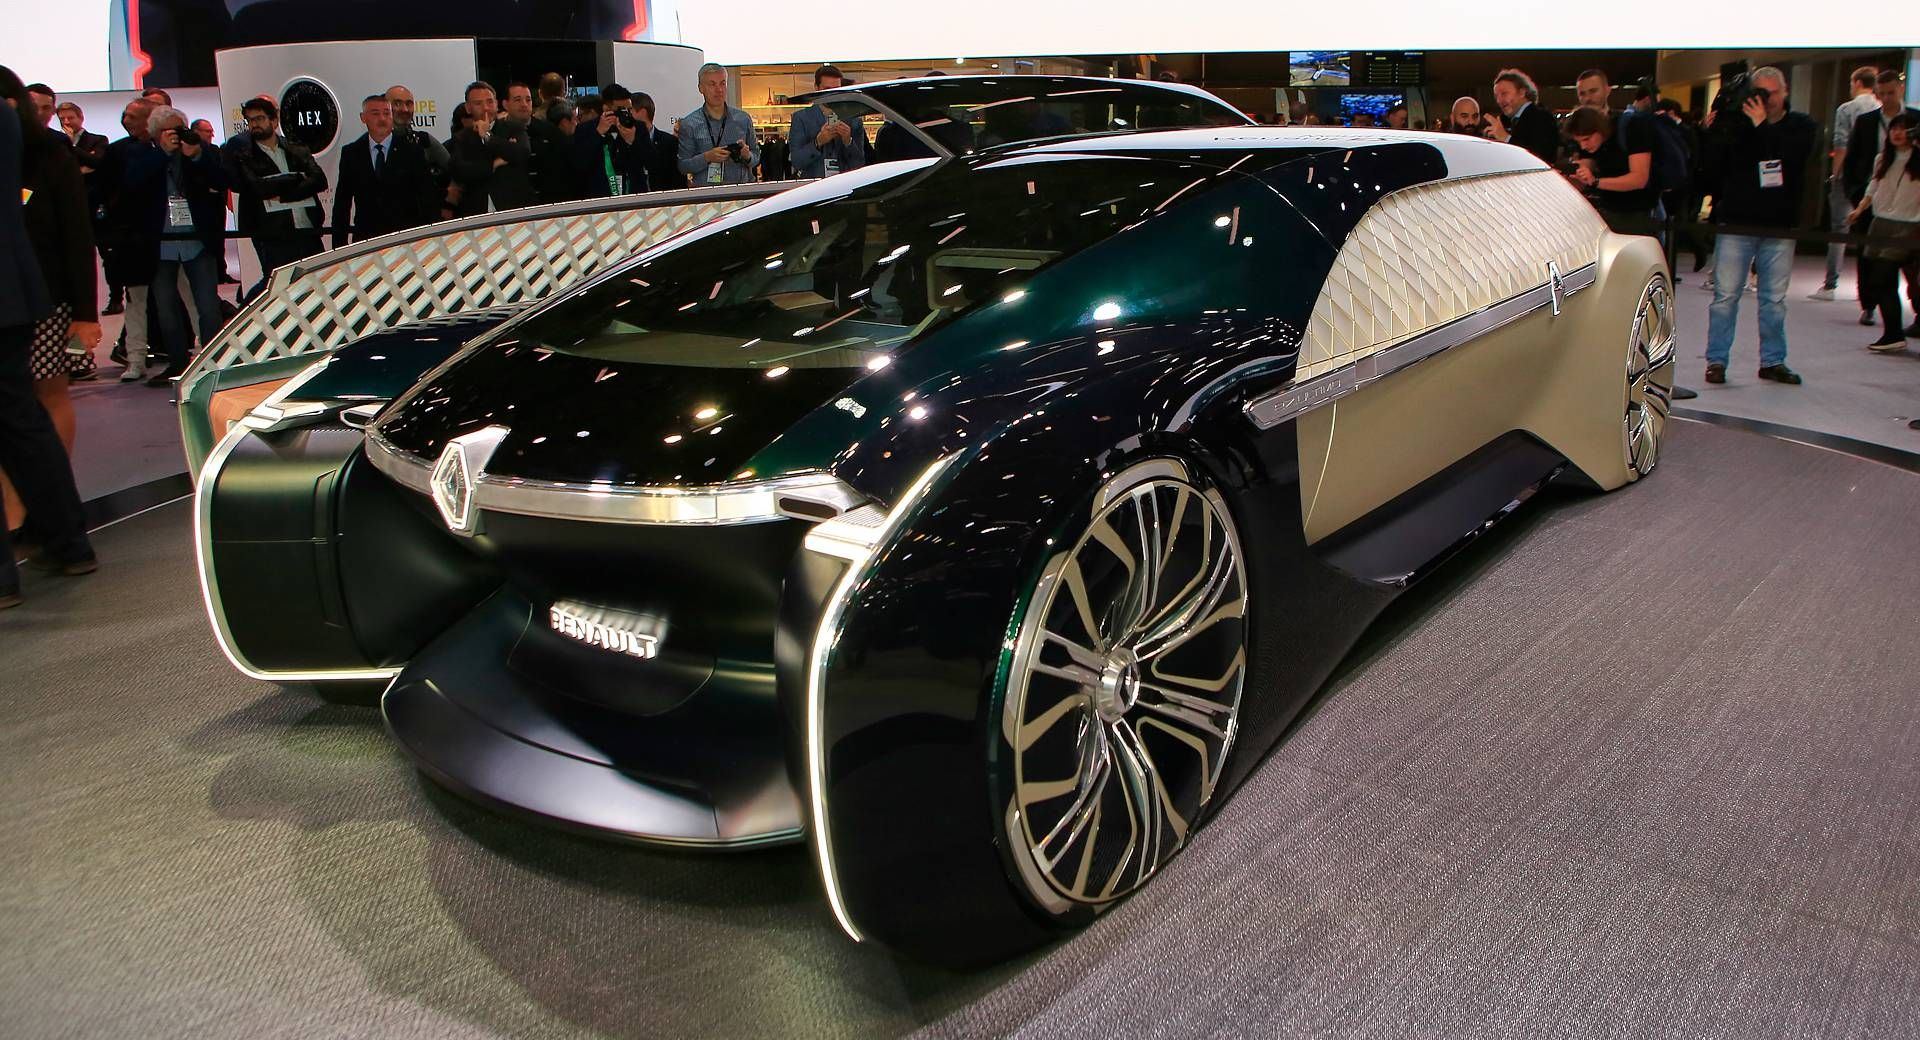 Renault Ez Ultimo Concept Envisions Self Driving Luxury Lounge Carscoops Concept Car Design Renault Self Driving